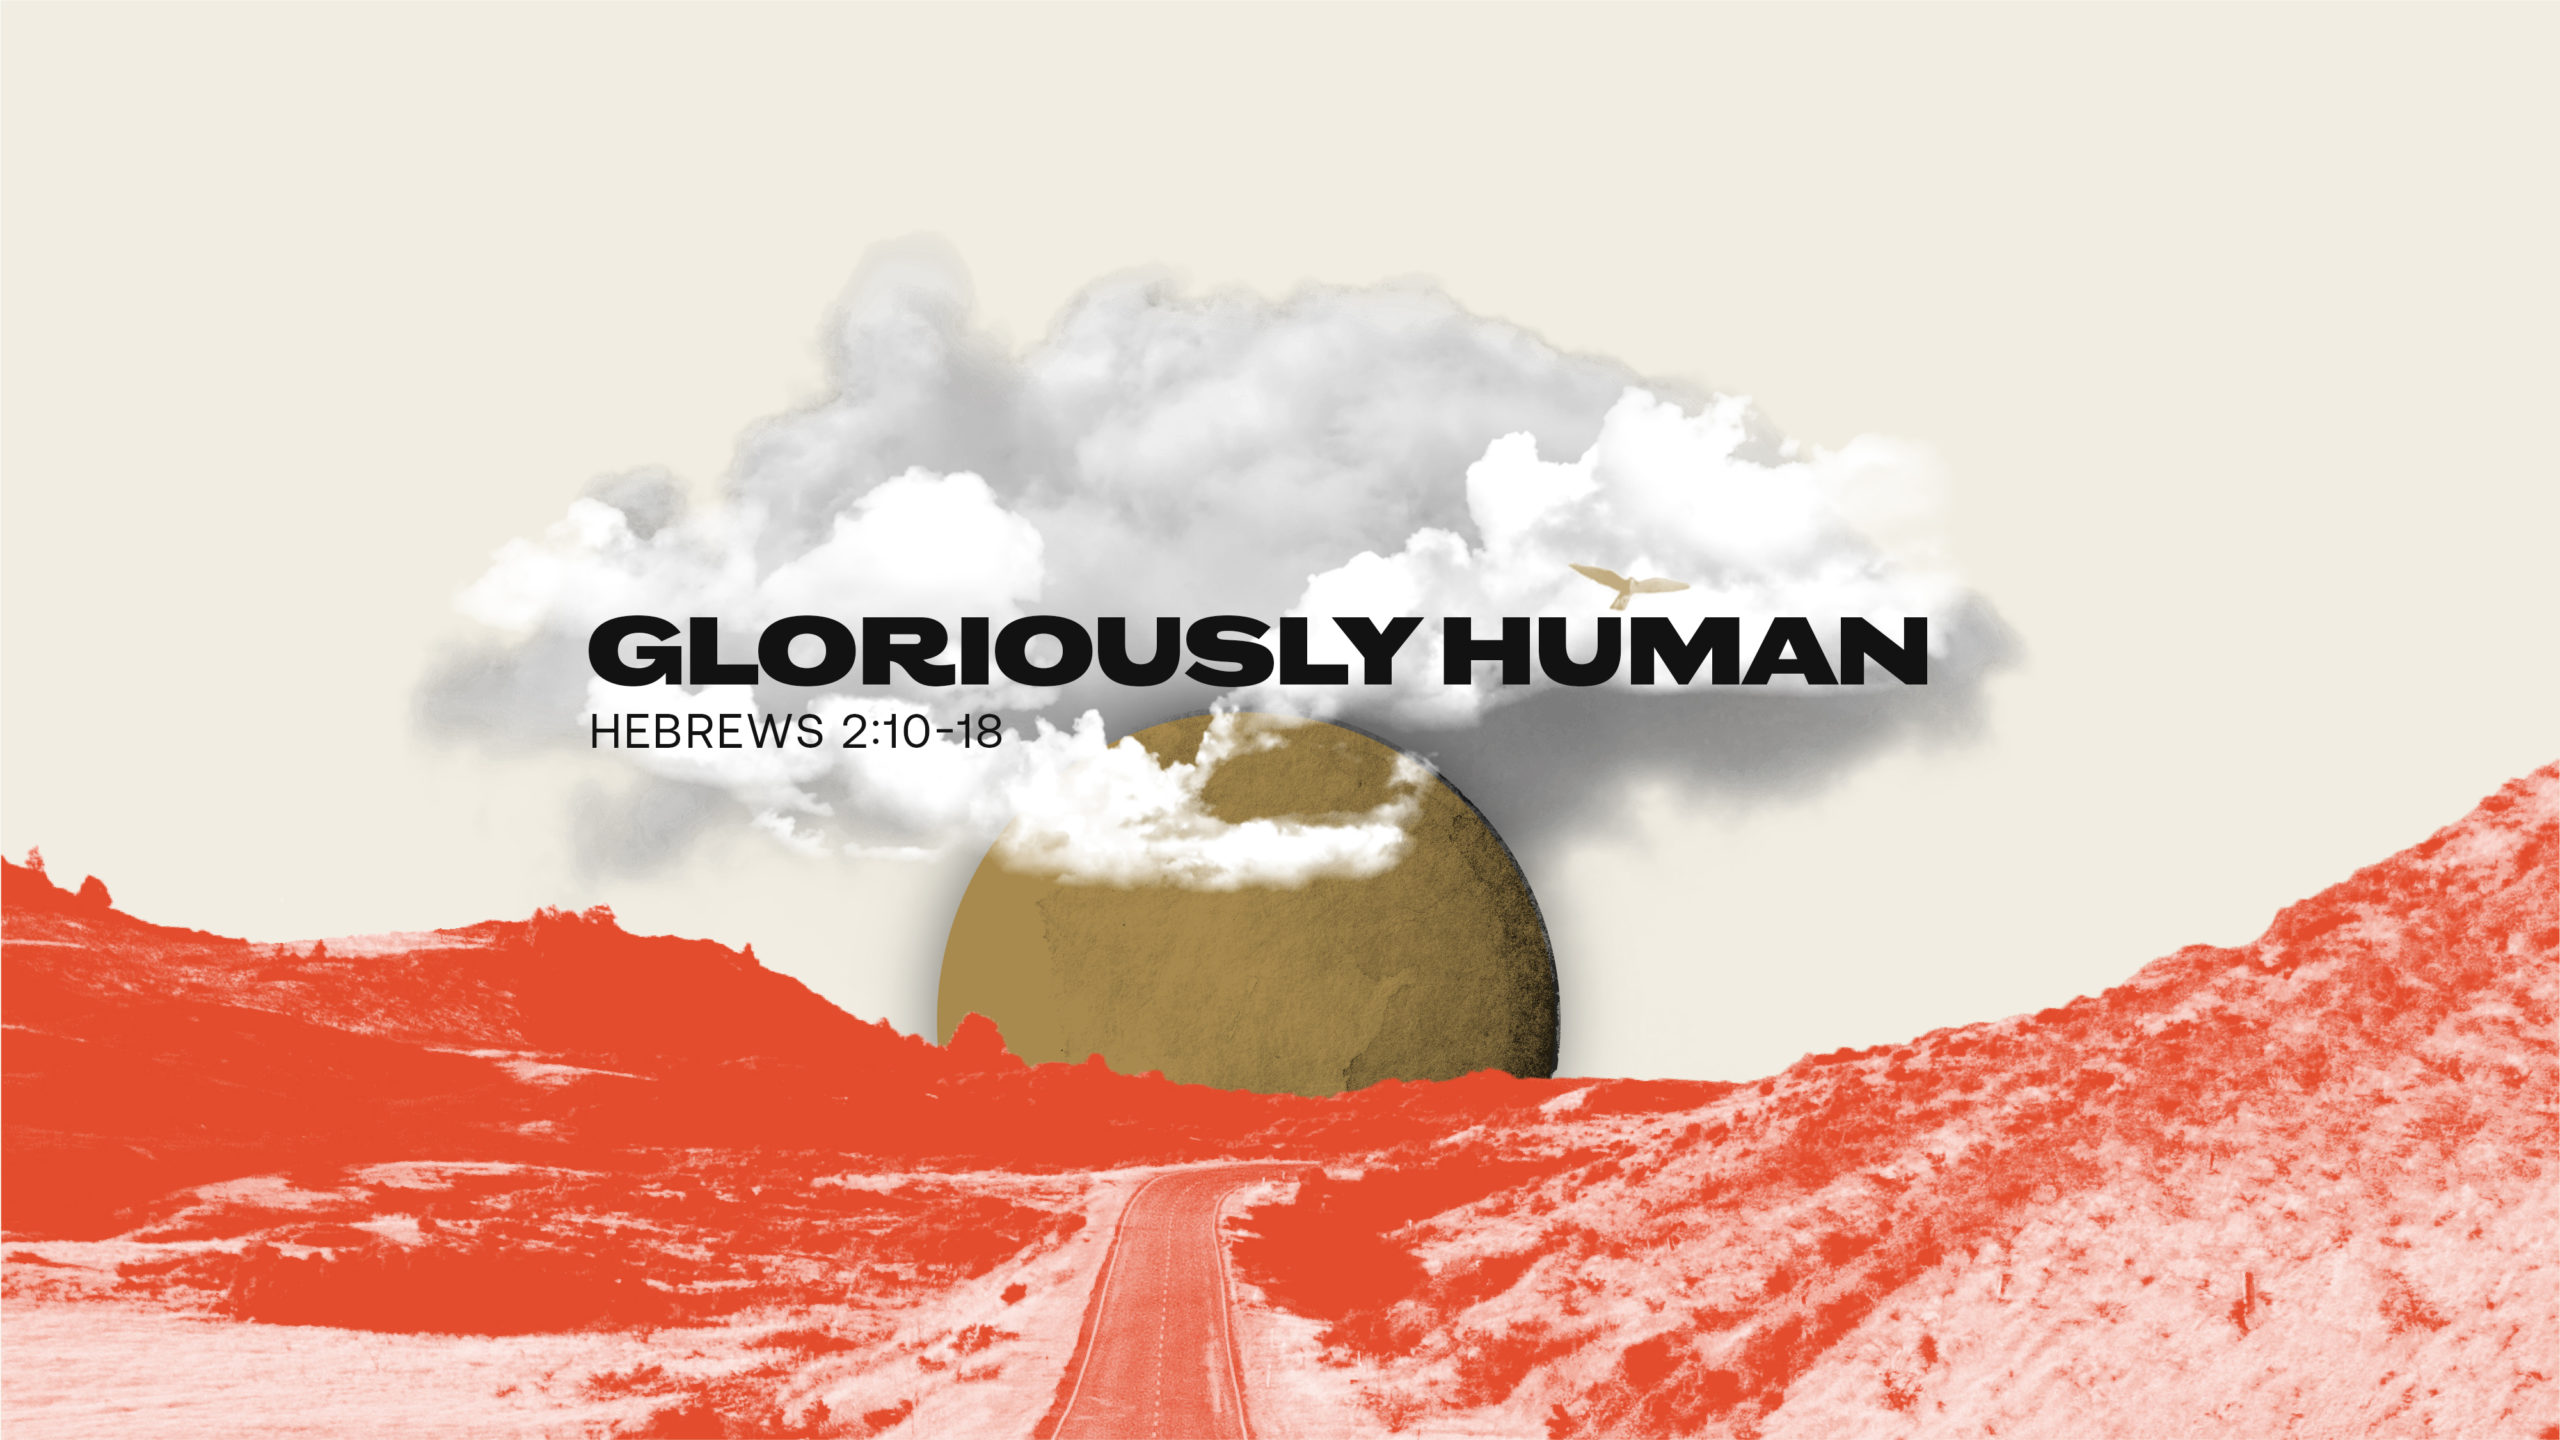 Gloriously Human